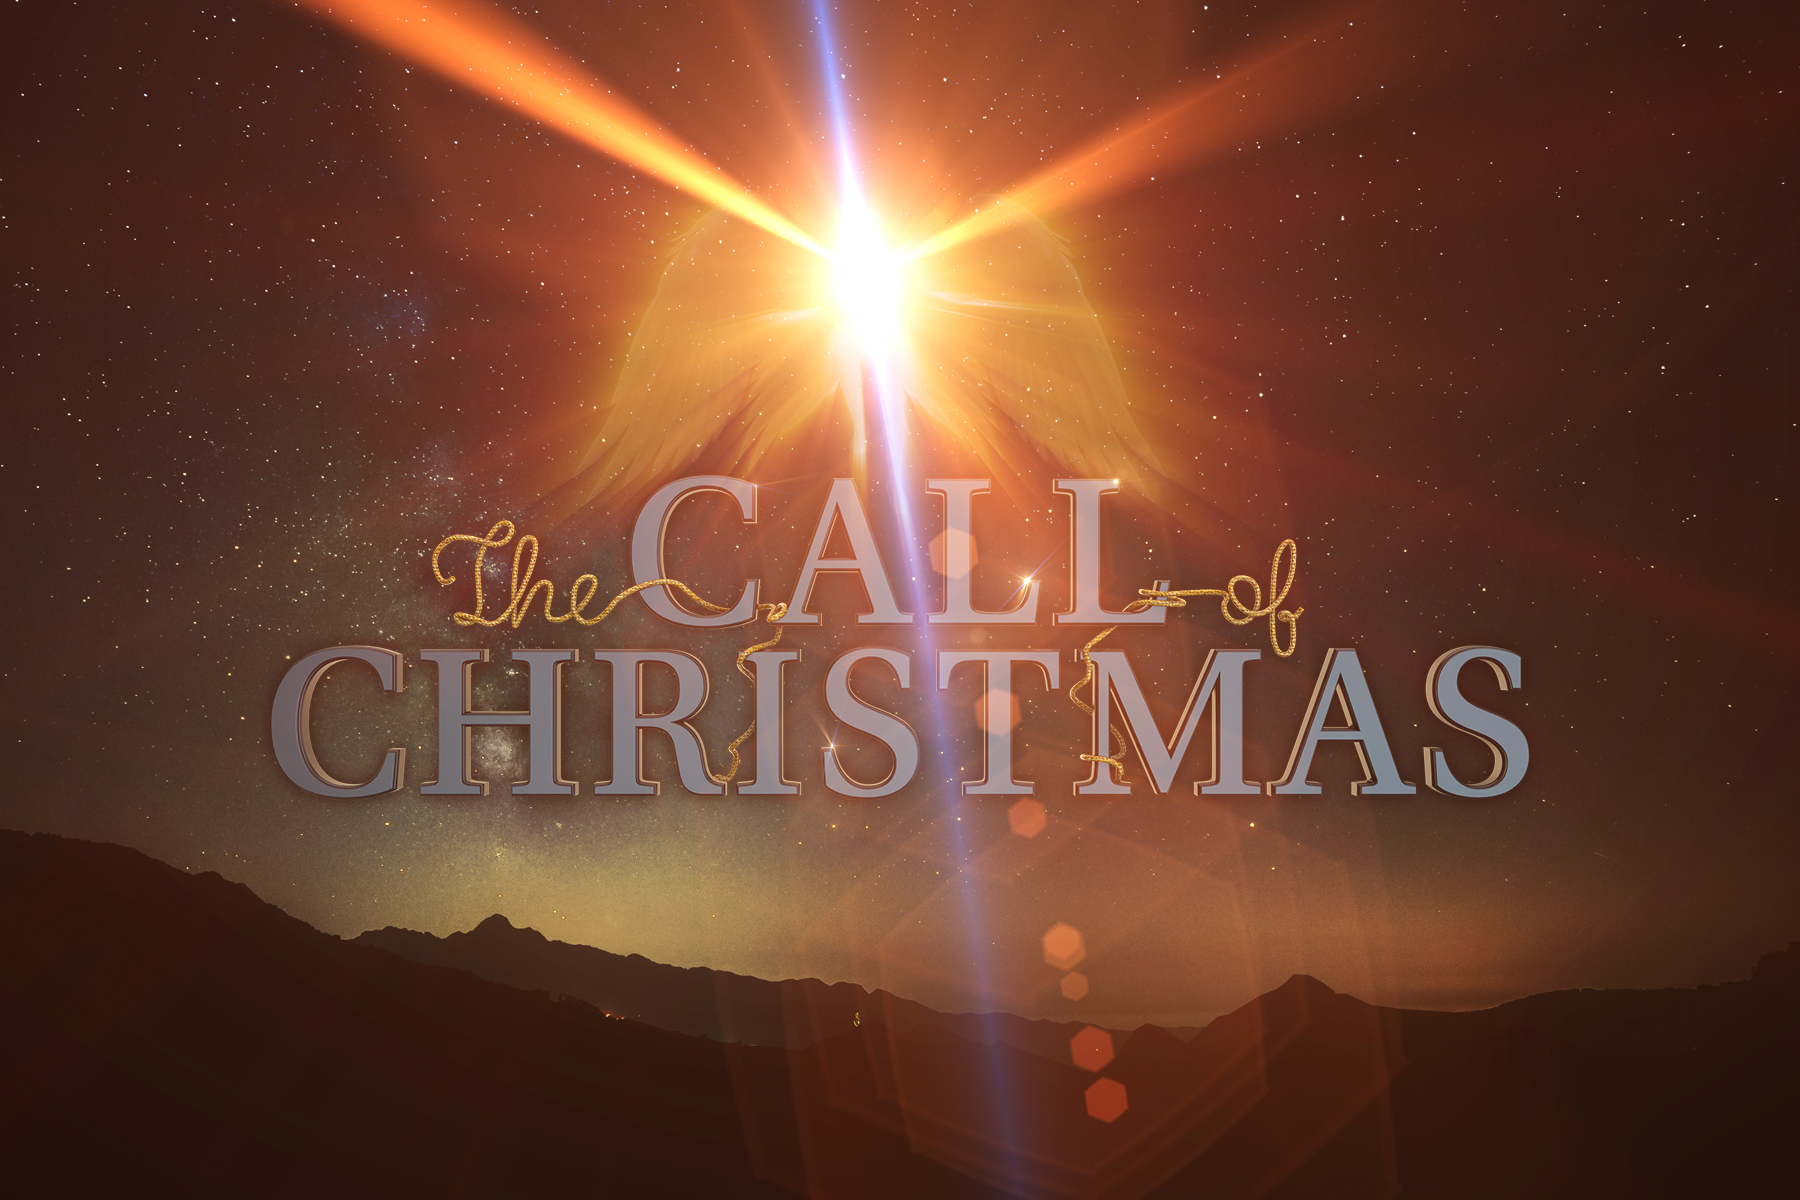 Christmas is the time we celebrate Jesus coming down to Earth as fully man and fully God, he called people and is still calling people today. As we enjoy the Christmas season let's make sure we're listening for the call of Christ this Christmas. -